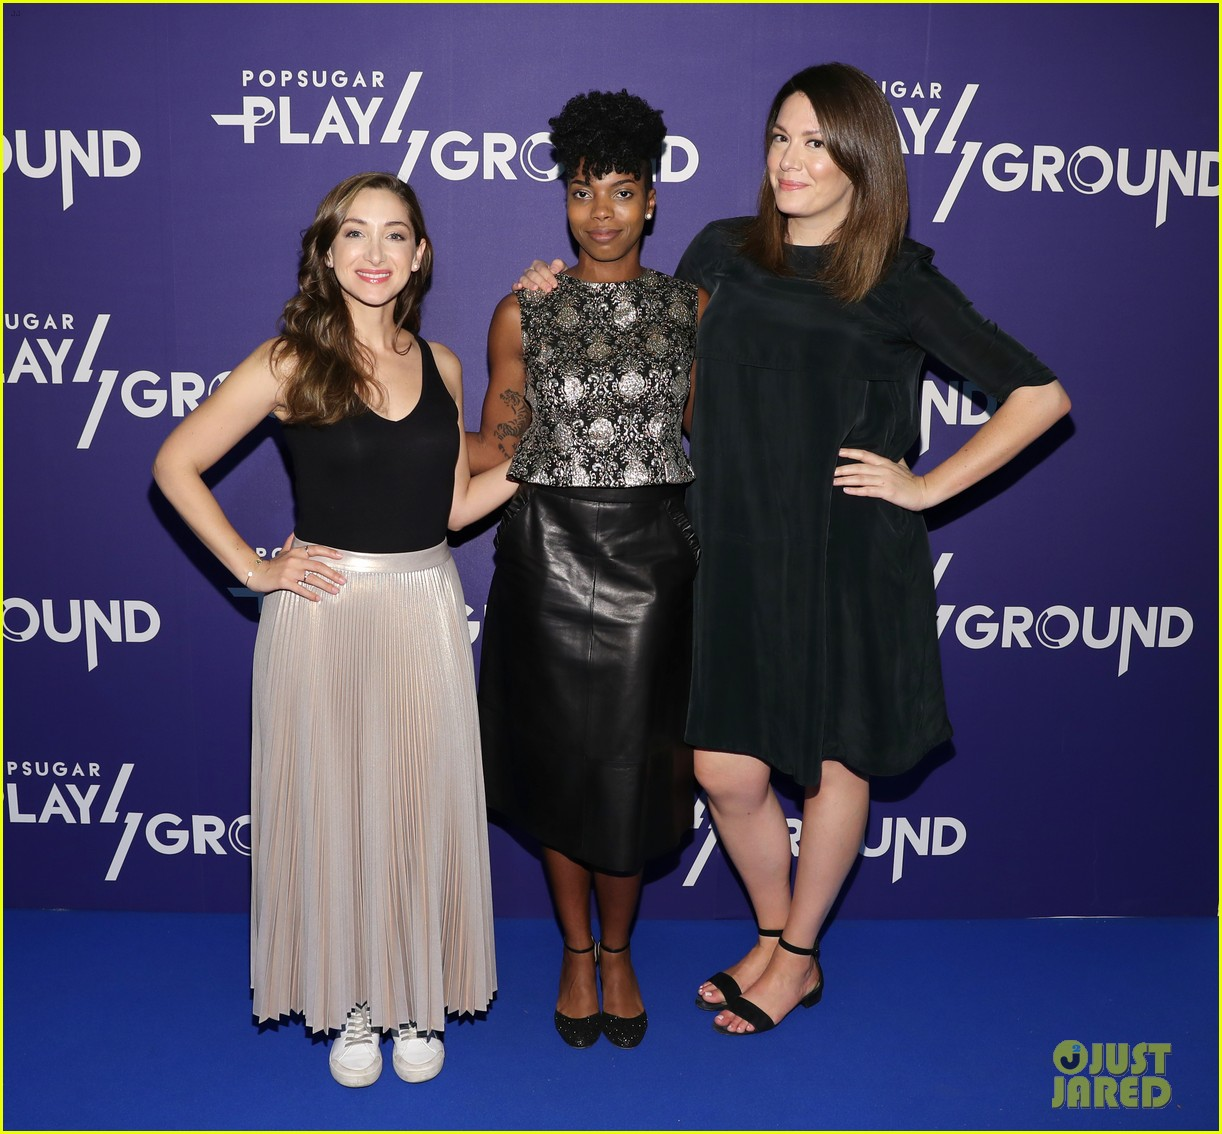 yara shahidi and katie stevens have a ball at popsugar event in nyc 57